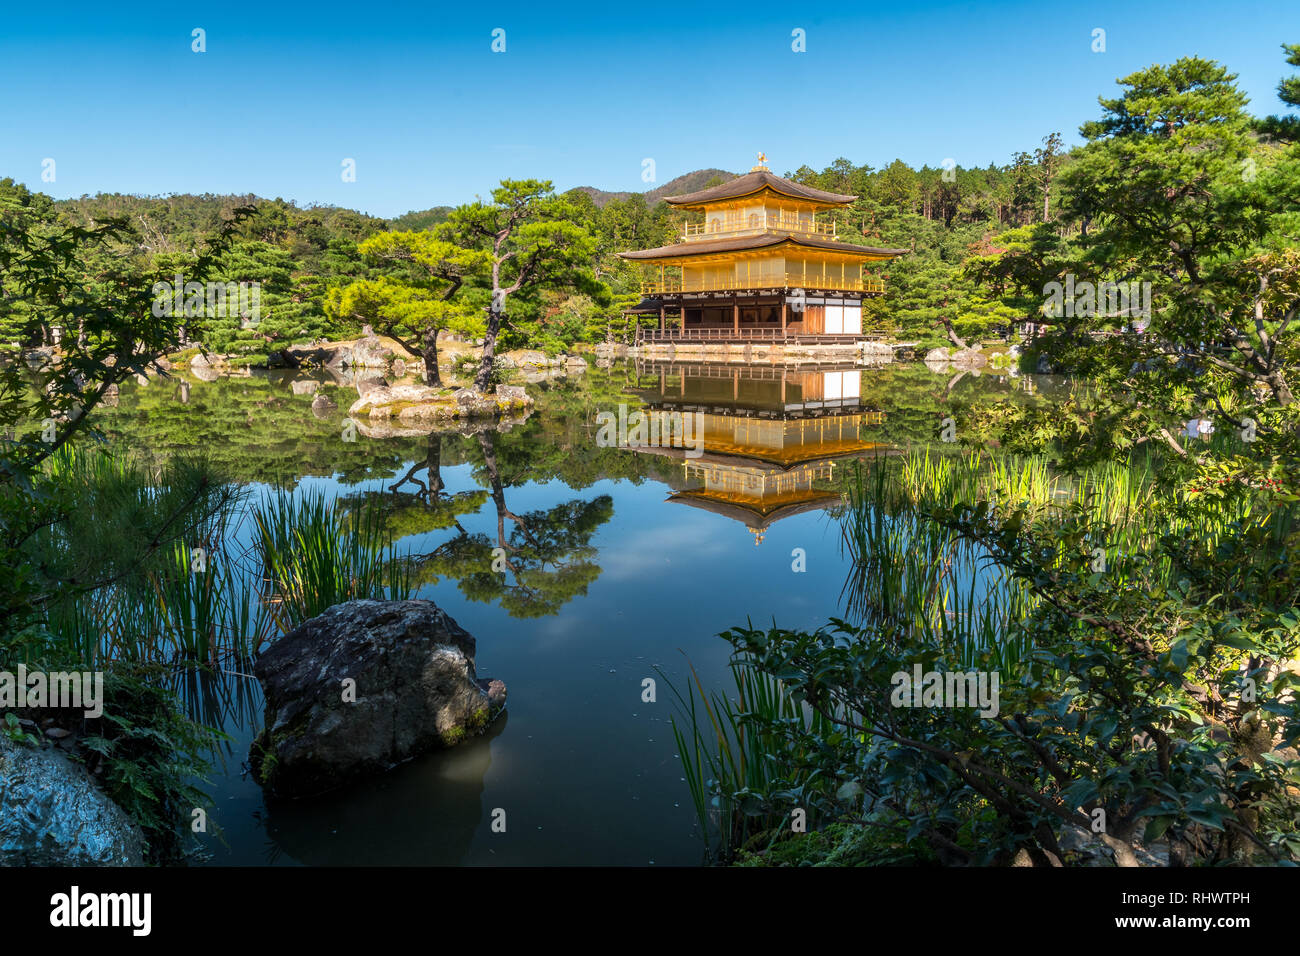 Golden Temple of Kinkaku-ji with reflection in pond in Kyoto - Stock Image